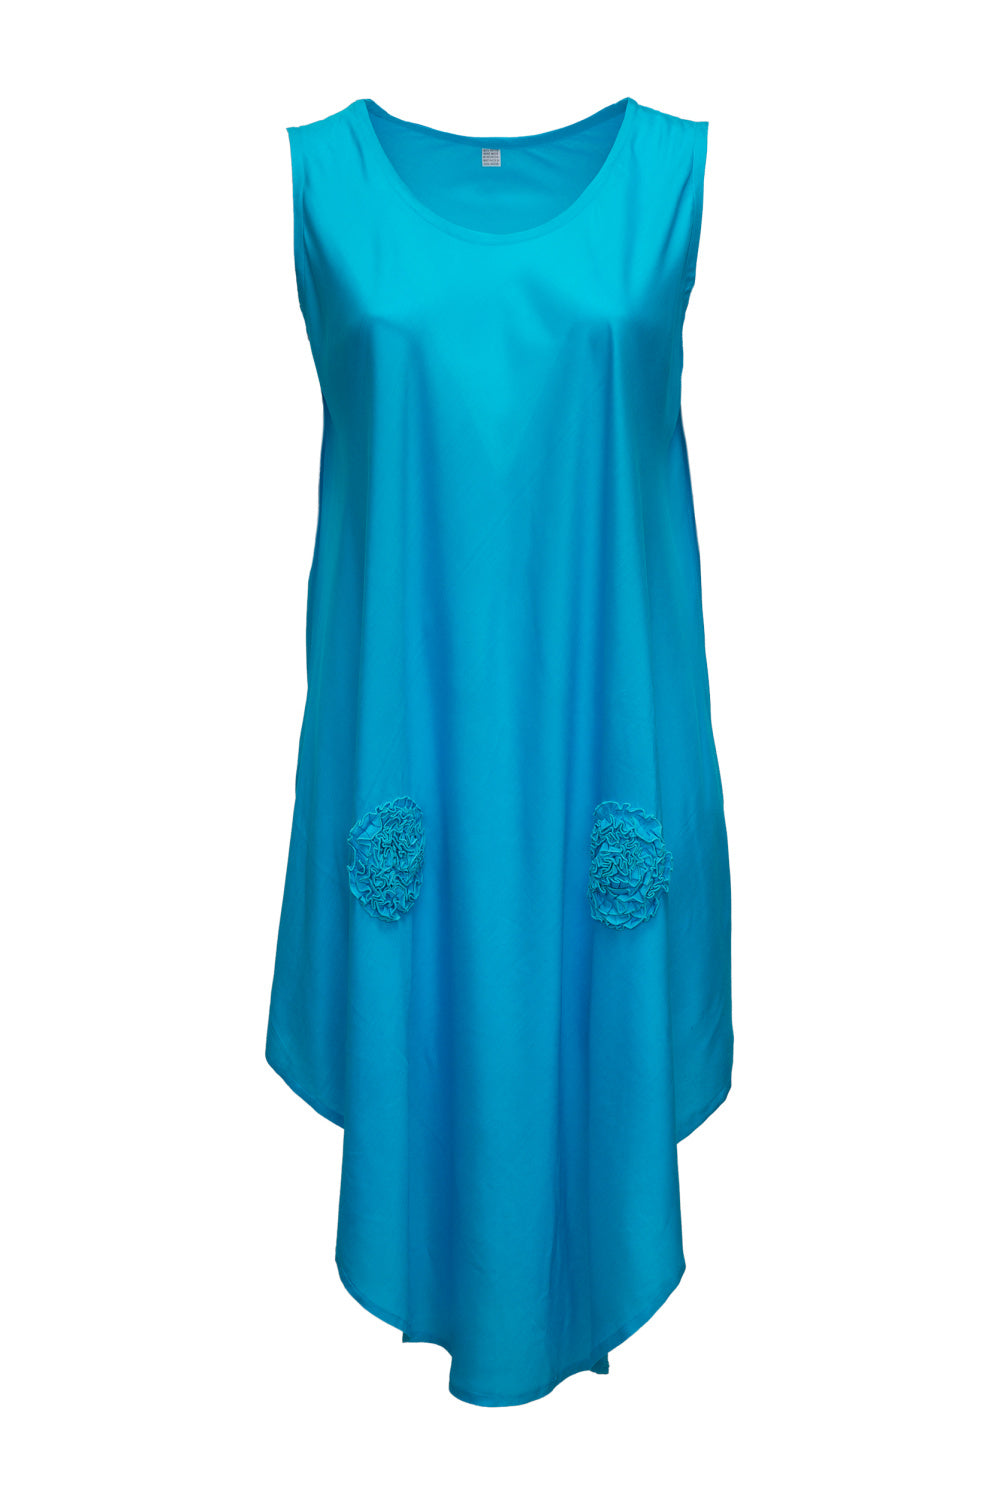 plus-size-summer-dress-sky-blue